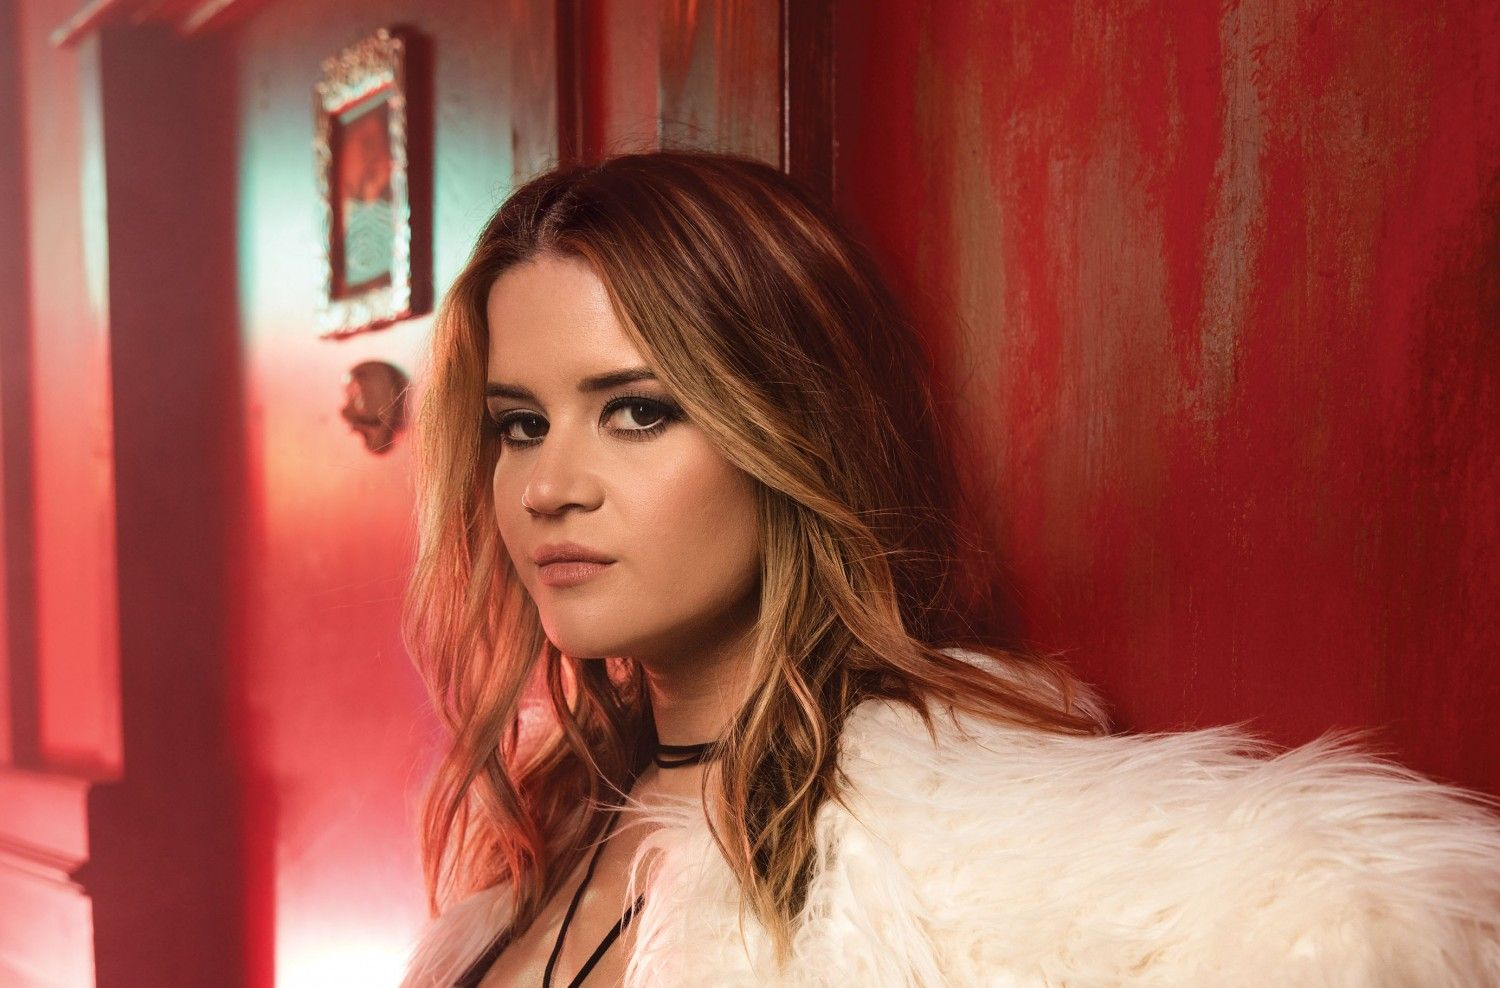 Maren Morris Katy Perry Miley Cyrus and Little Big Town are part of Dolly Partons segment during the Grammy Awards 7 pm Sunday on CBS